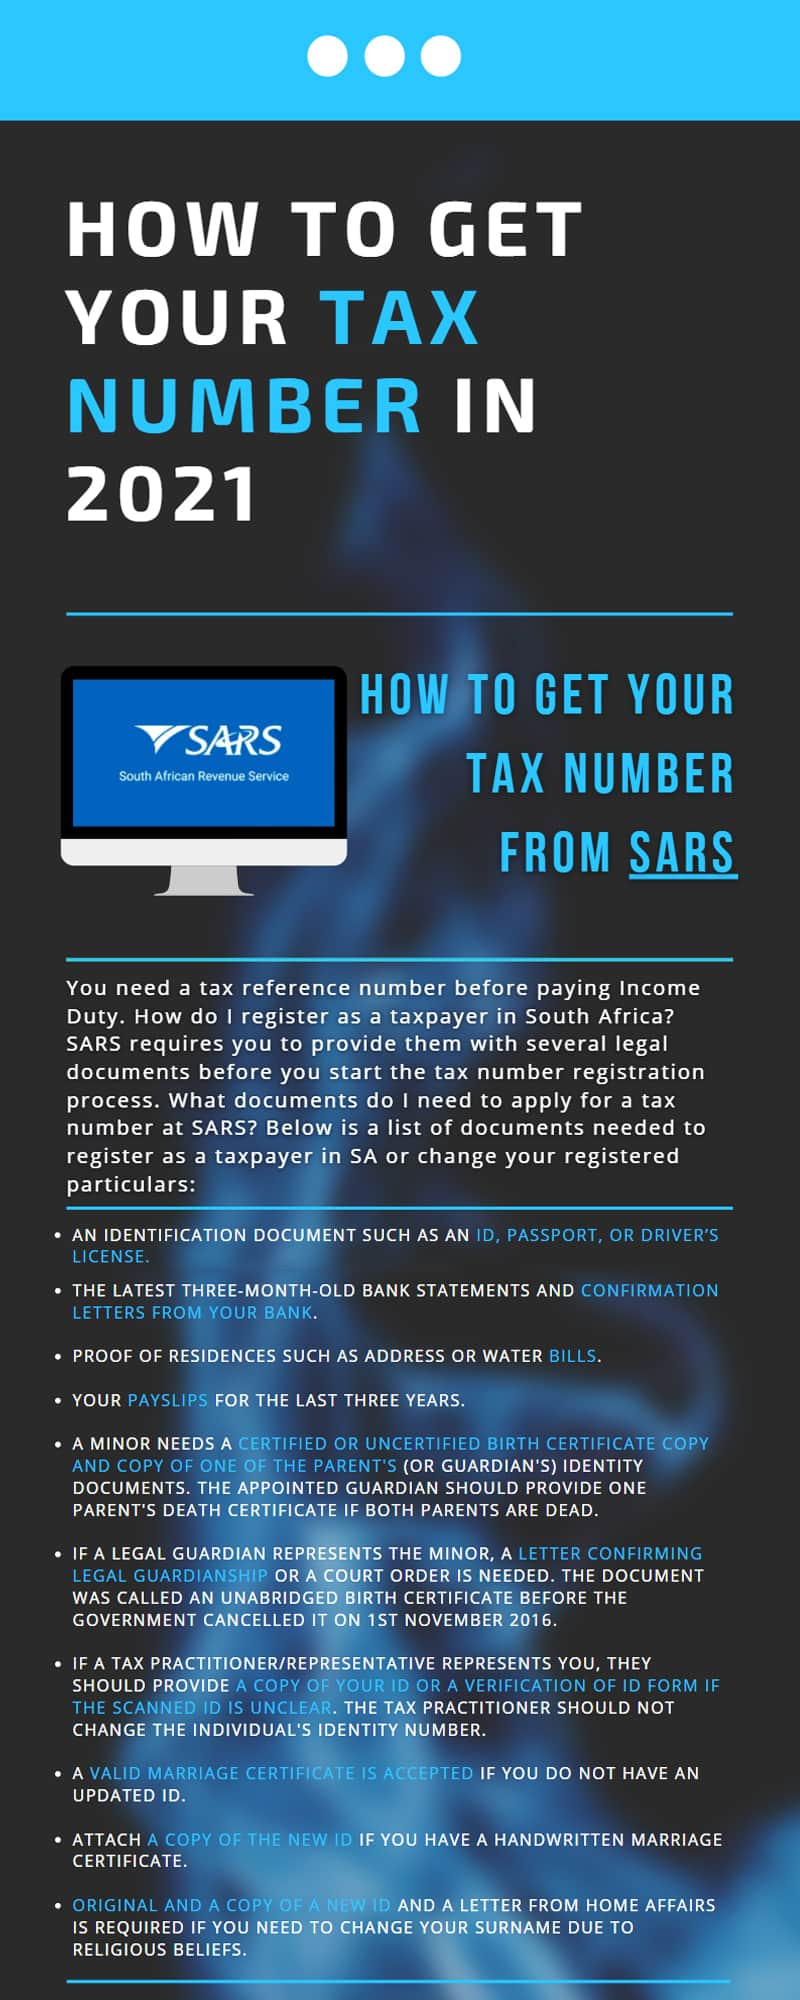 How to get your tax number